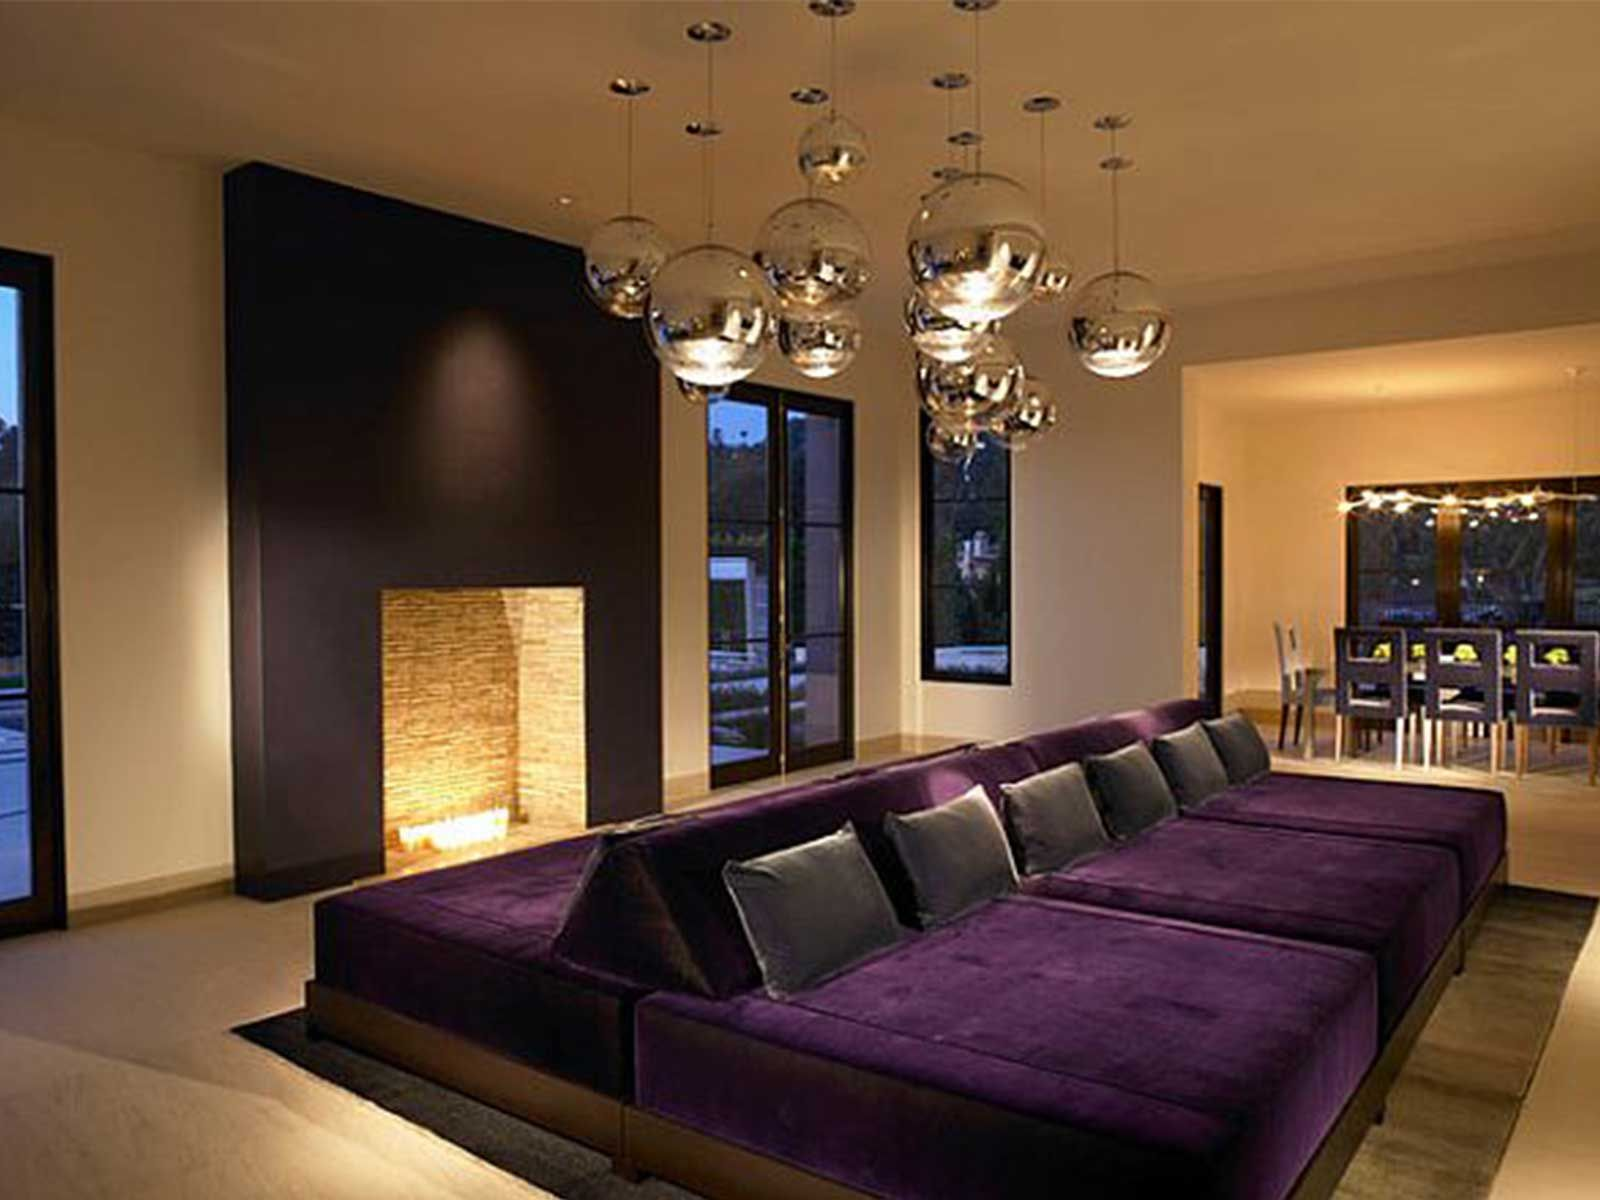 Basement Home Theatre Ideas Property fascinating home theatre design ideascomfortable purple seats